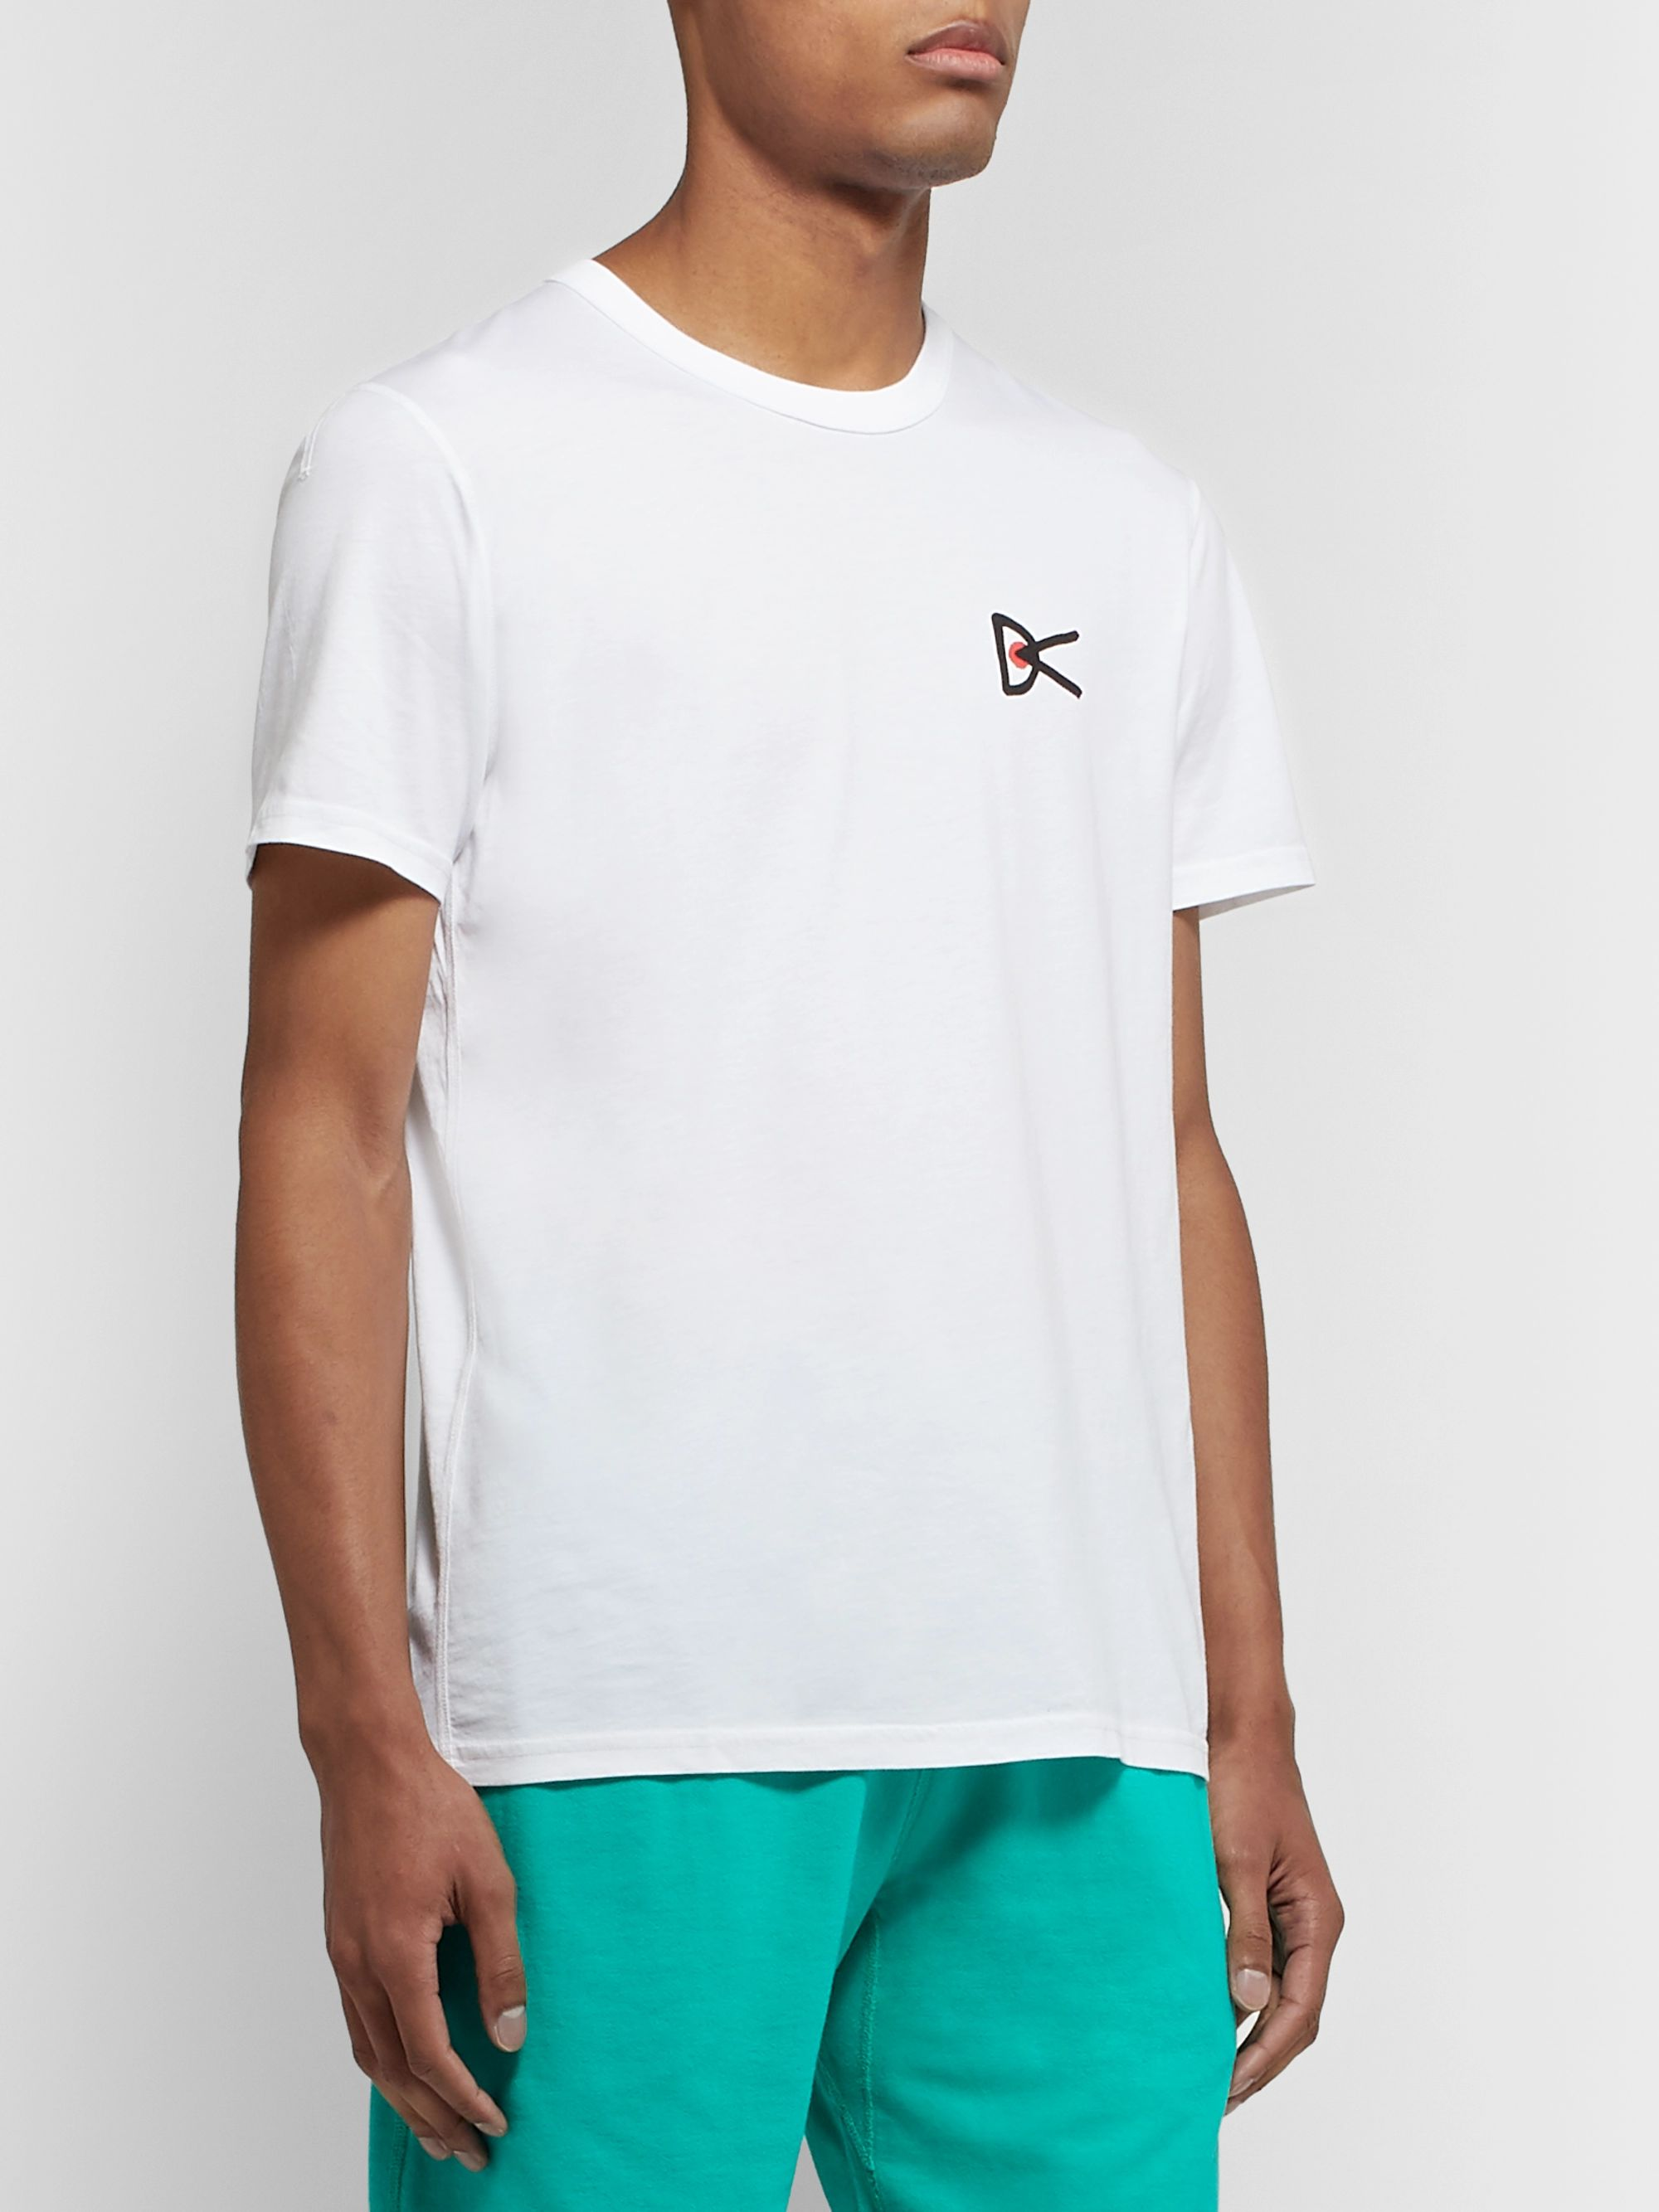 DISTRICT VISION + Reigning Champ Radical Retreat Printed Pima Cotton-Jersey T-Shirt